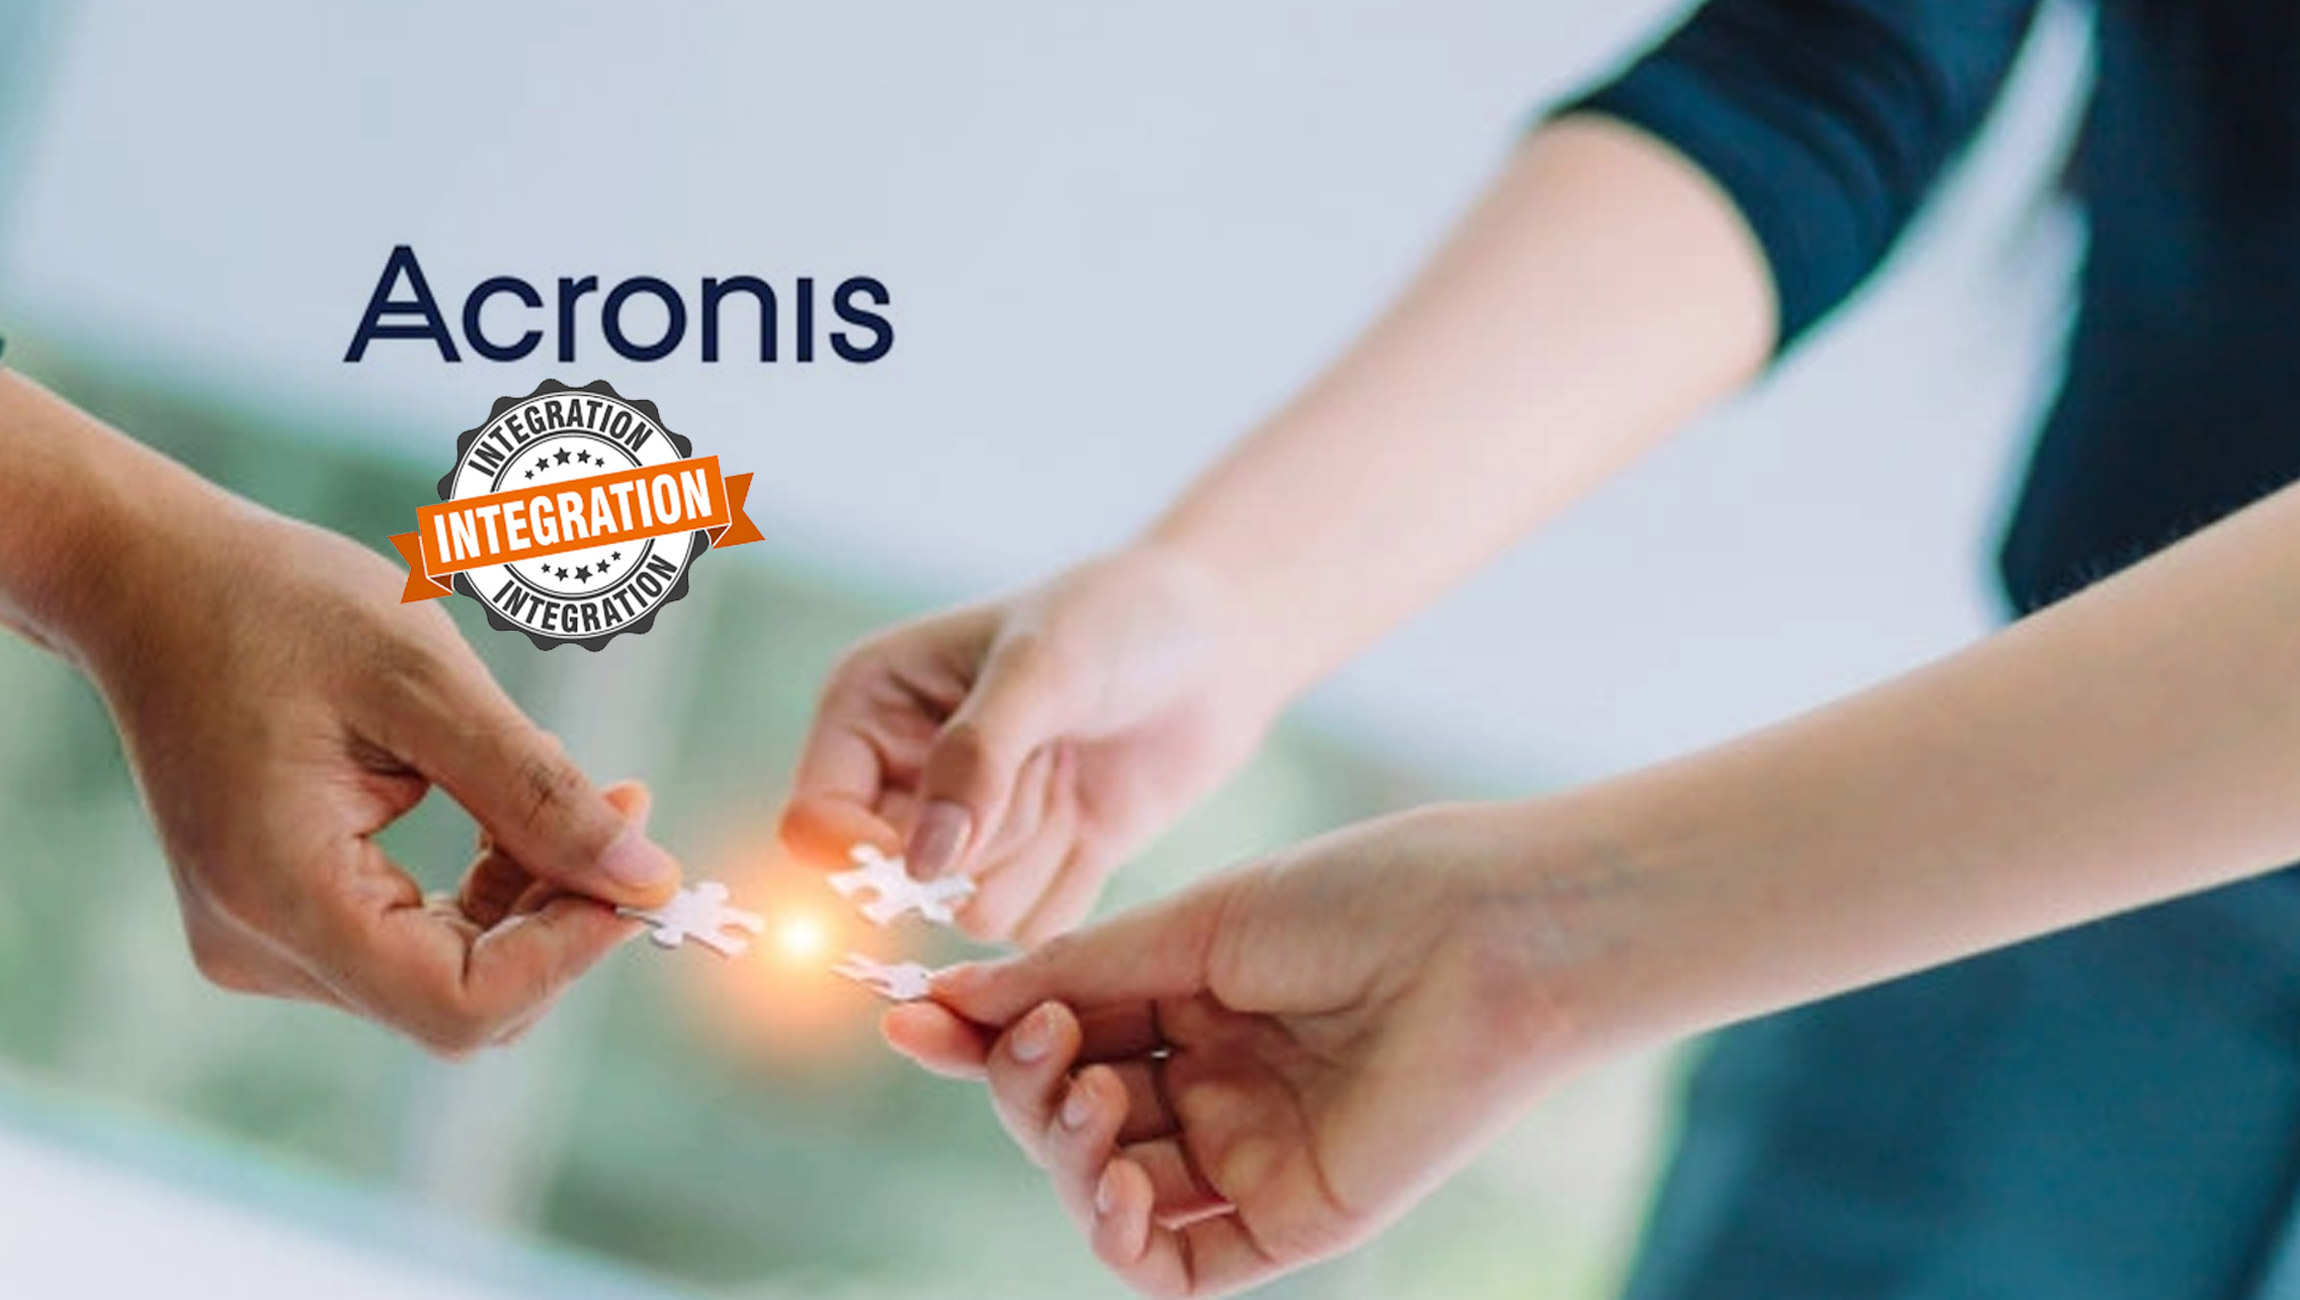 Acronis-integrates-with-Jamf_-expanding-support-for-service-providers-handling-macOS-clients